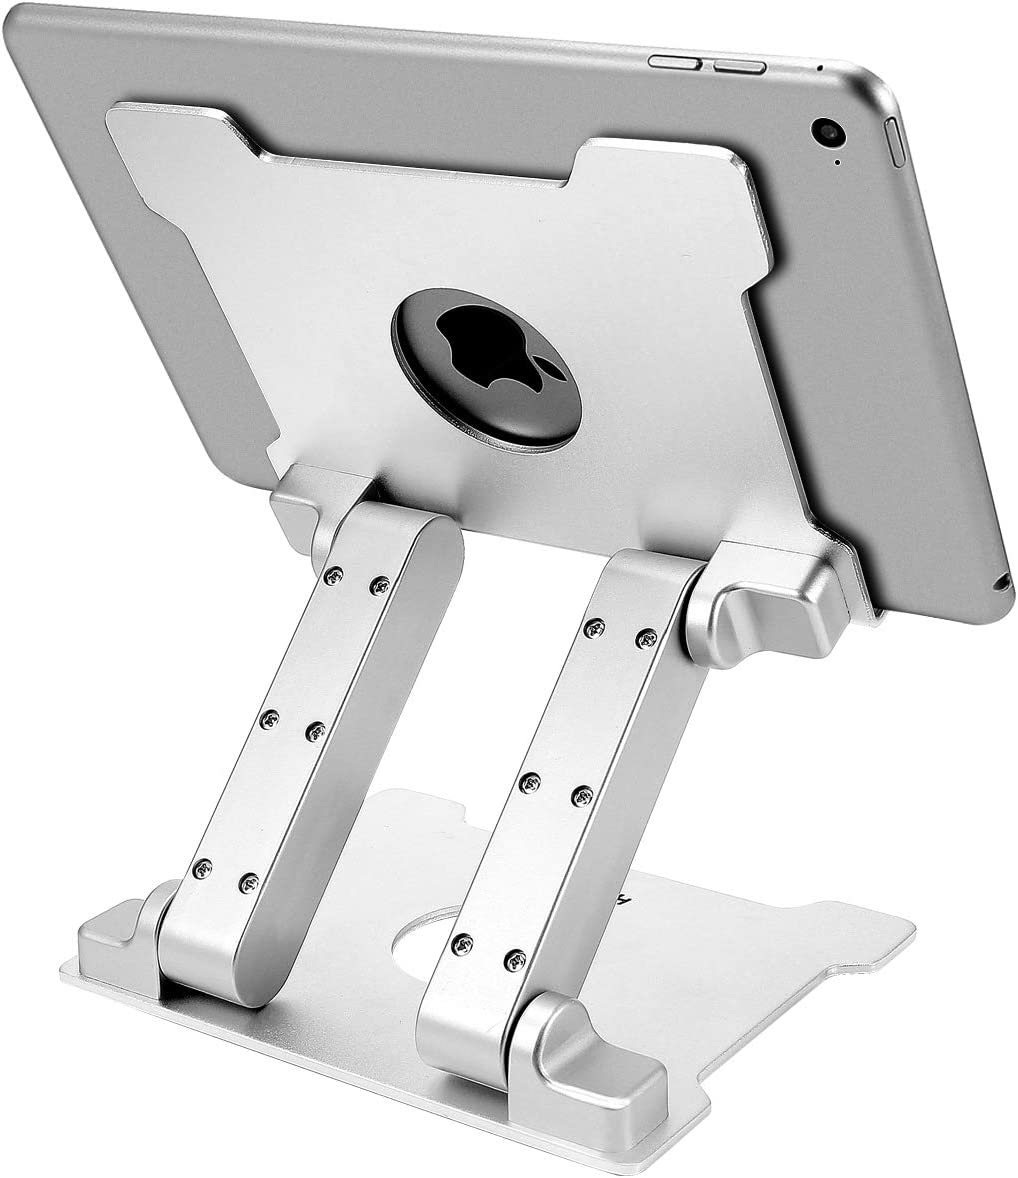 KABCON Quality Tablet Stand,Adjustable Foldable Eye-Level Aluminum Solid Up to 15-in Tablets Holder for Microsoft Surface Series Tablets,iPad Series,Samsung Galaxy Tabs, Kindle Fire,Etc.Silver: Computers & Accessories